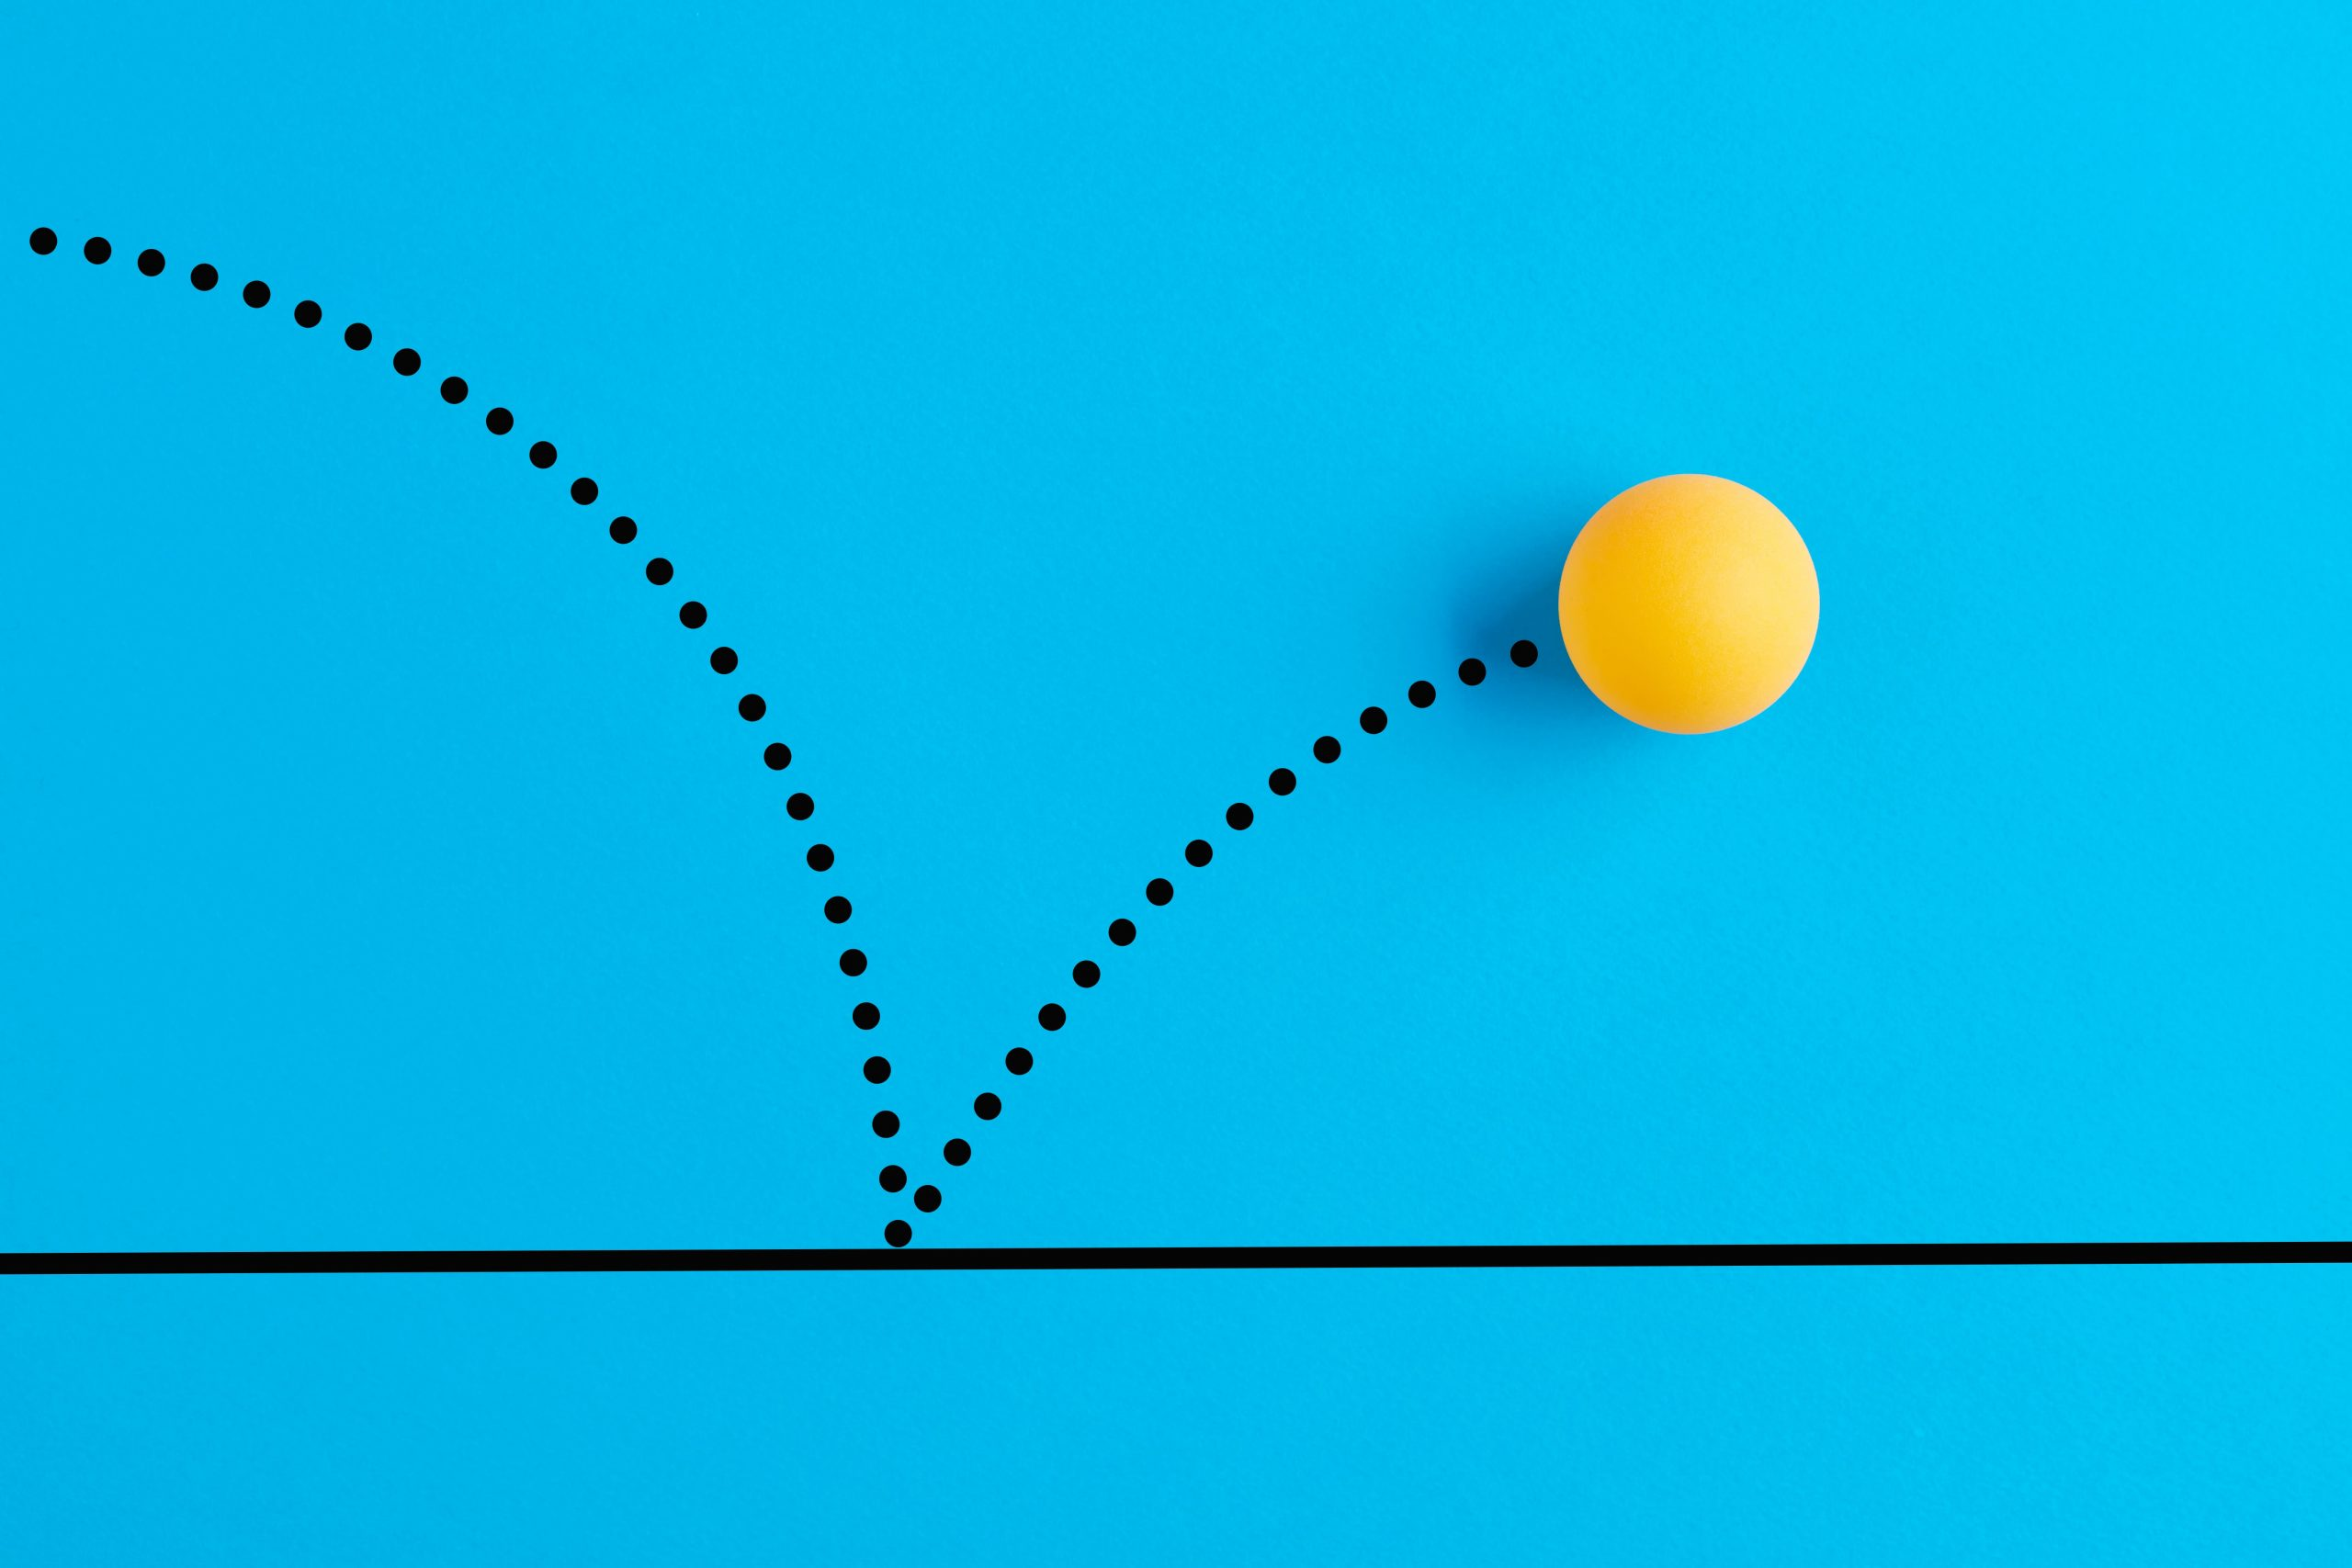 Bounce Rate – The crucial part of SEO that you are (probably) overlooking